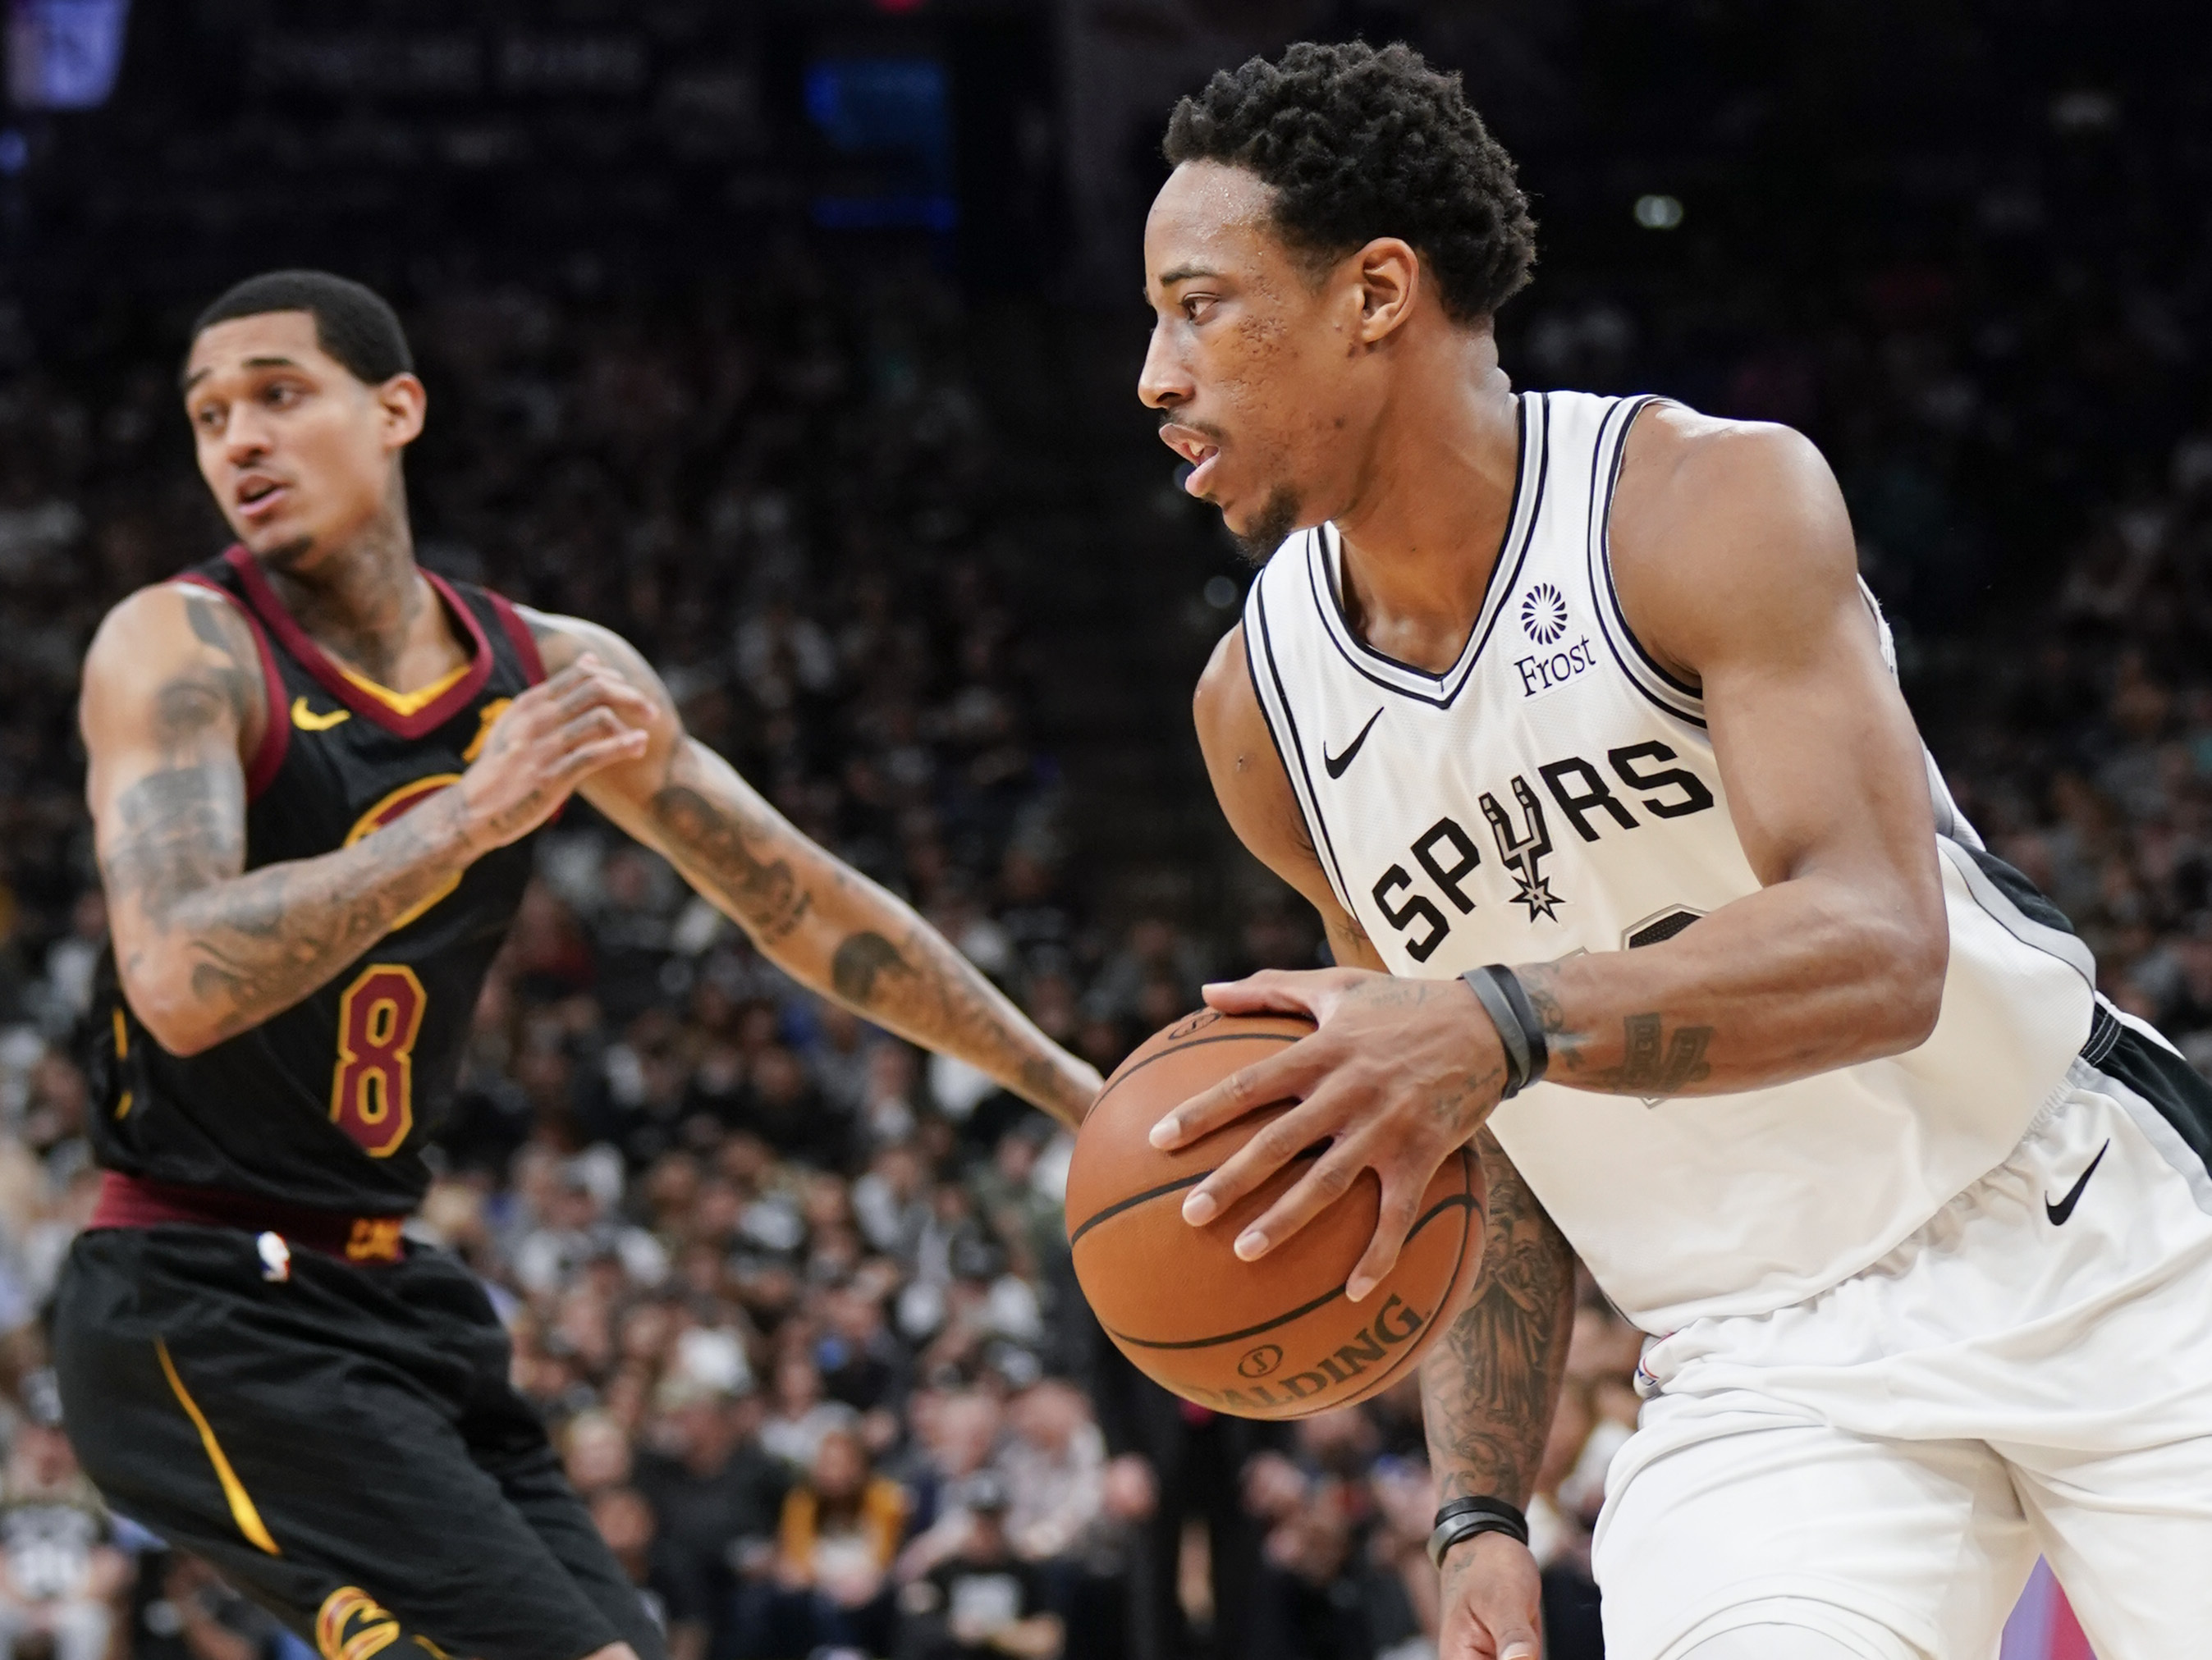 DeRozan leads Spurs past Cavs as team honors Ginobili